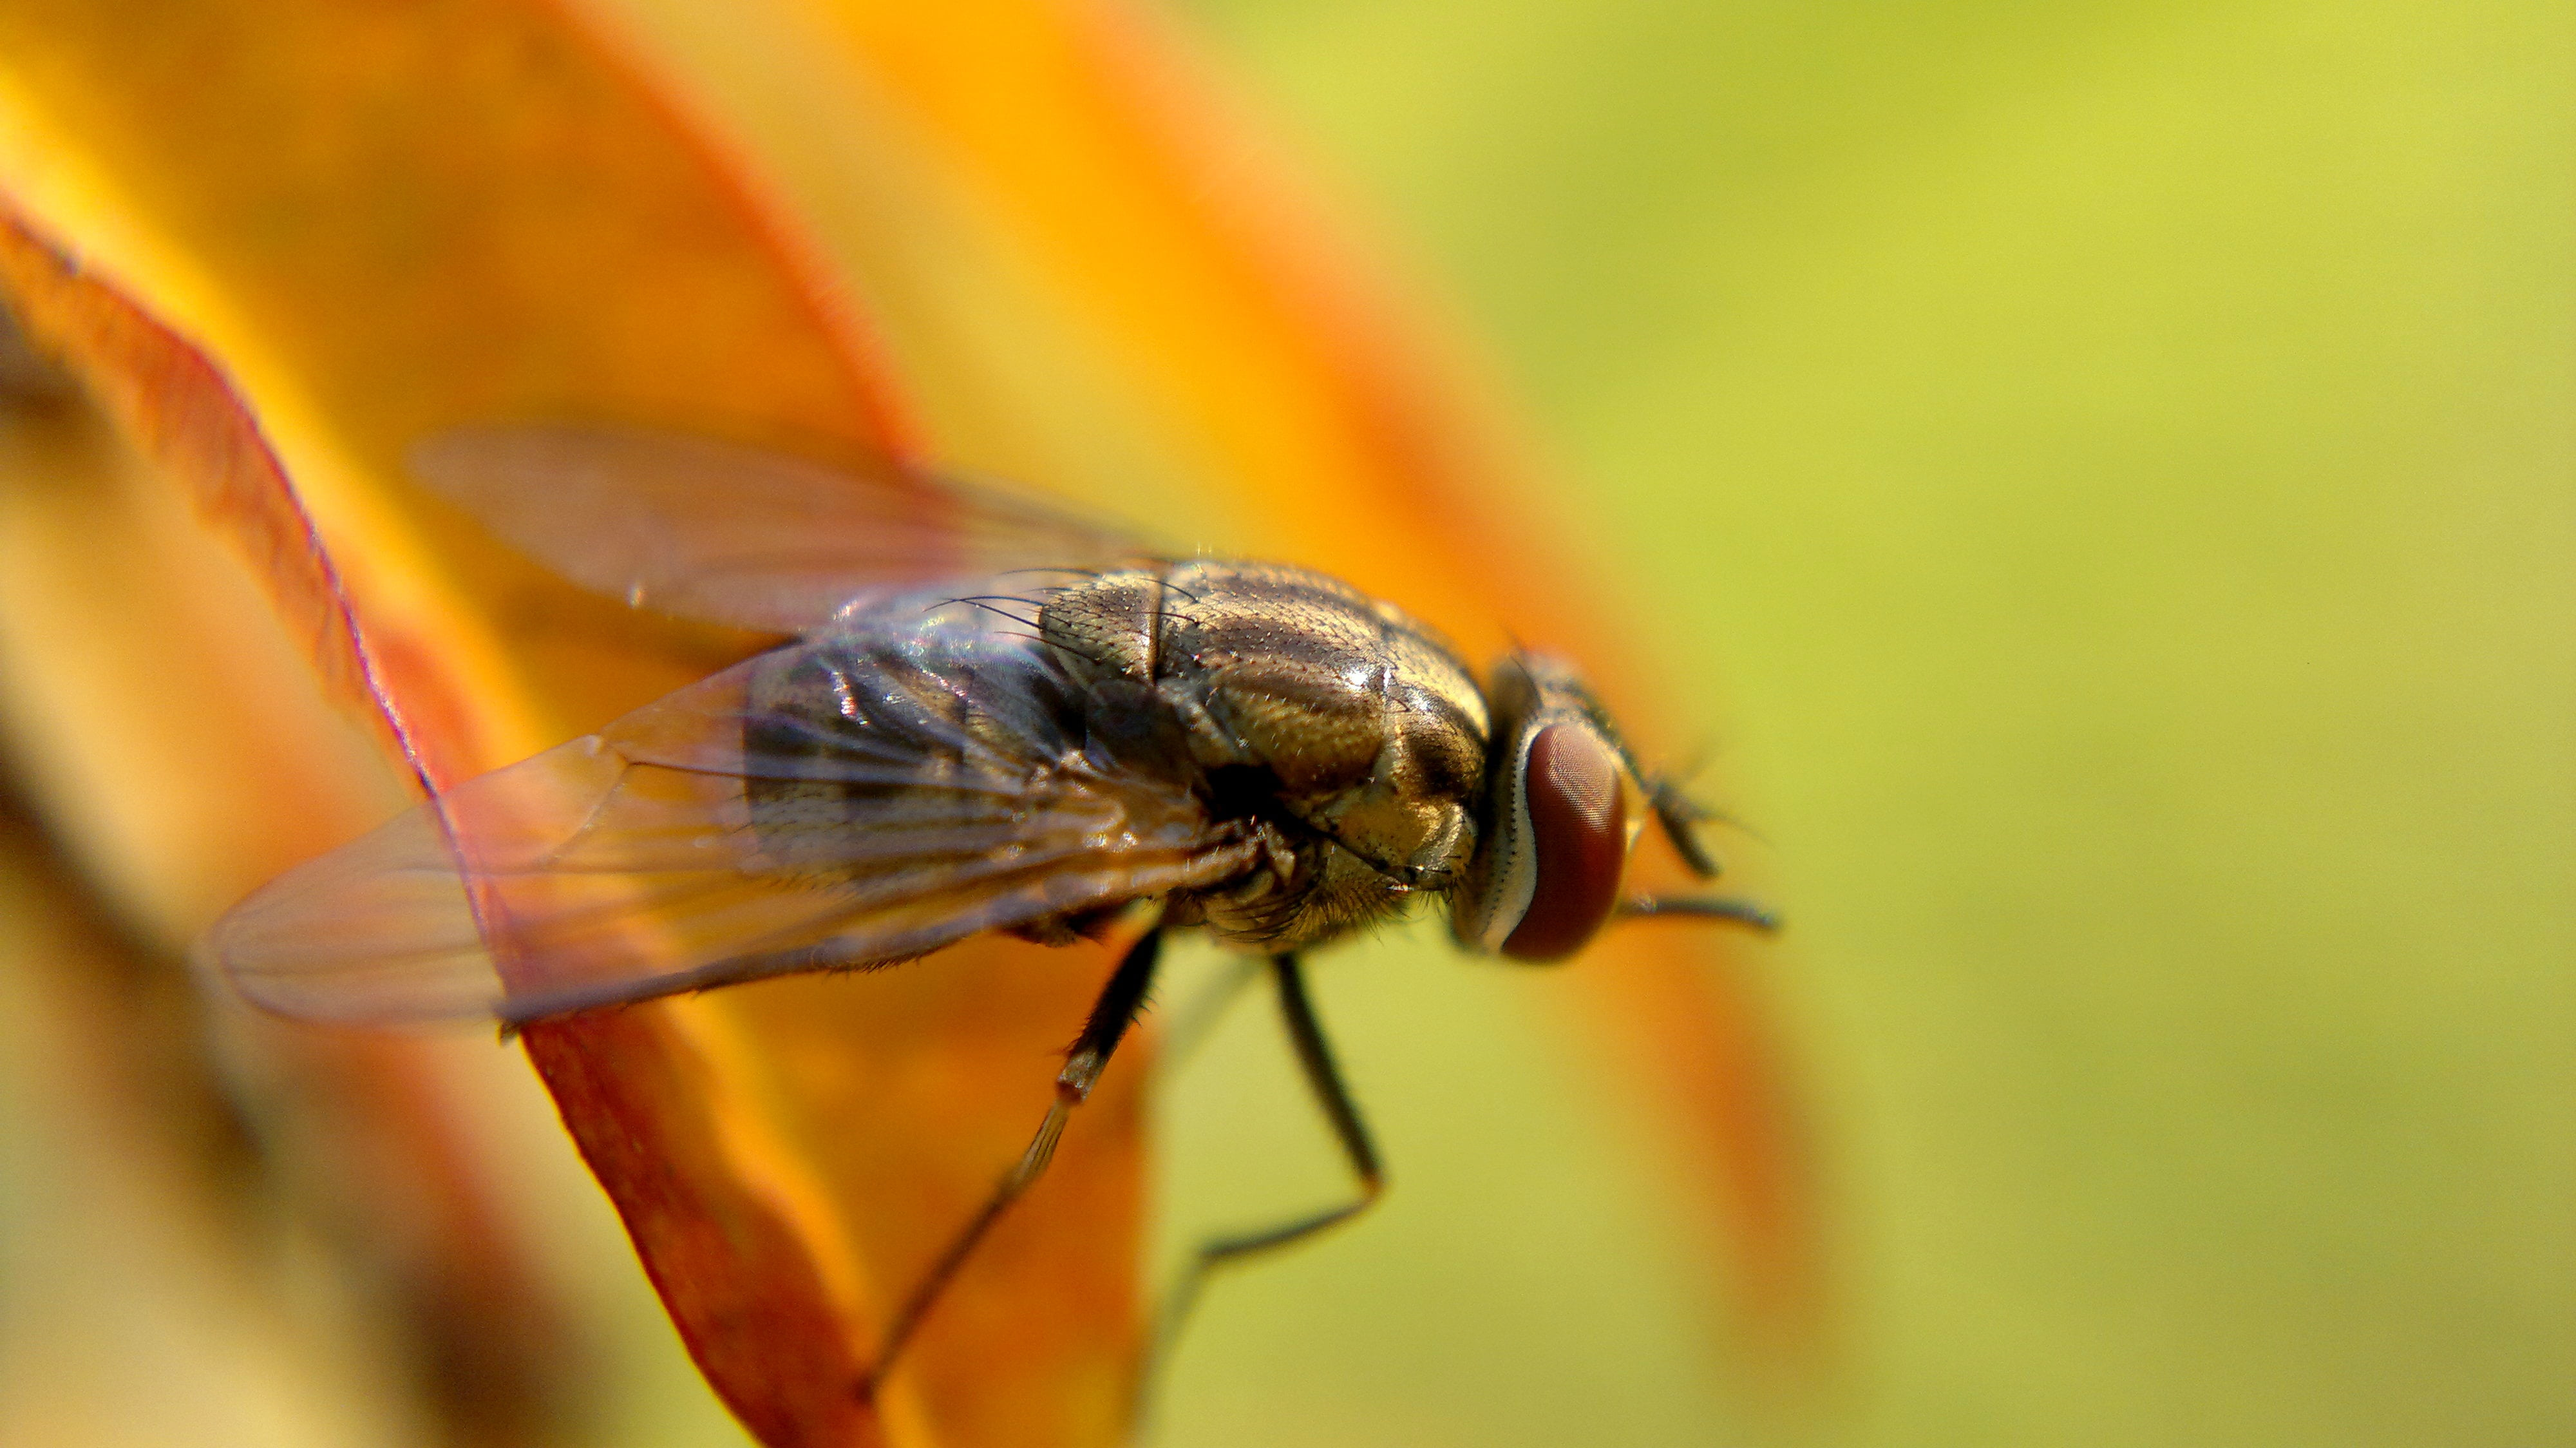 Common House fly perched on brown leaf, mosca HD wallpapers